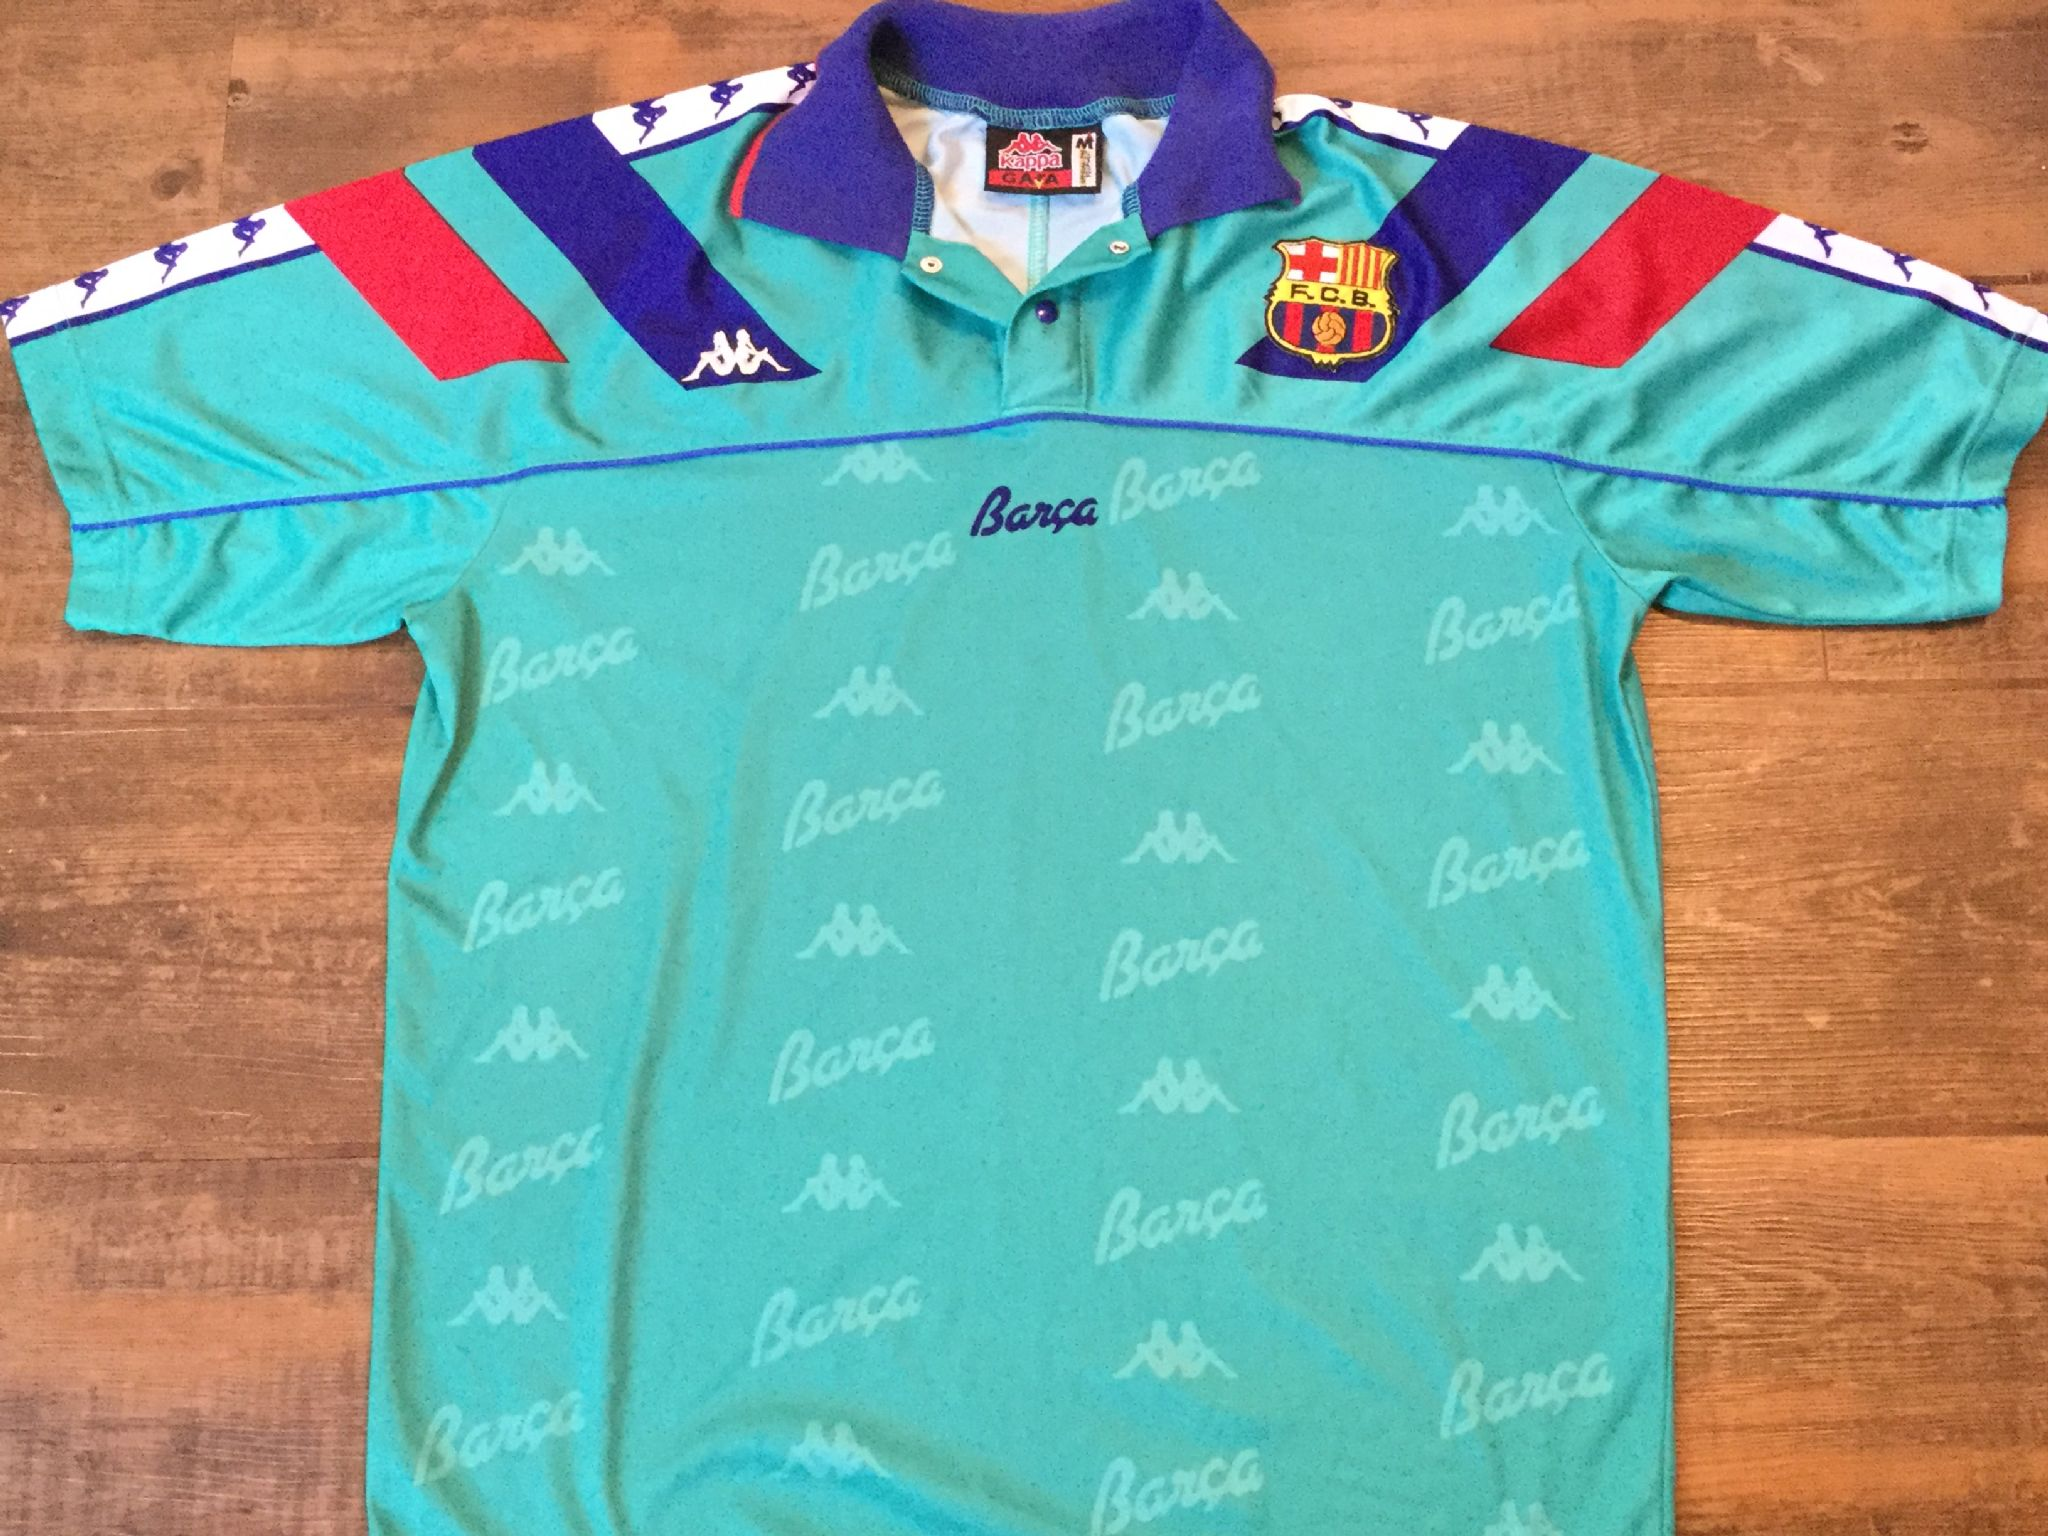 reputable site 40207 7c6fd Global Classic Football Shirts | 1992 Barcelona Old Vintage ...